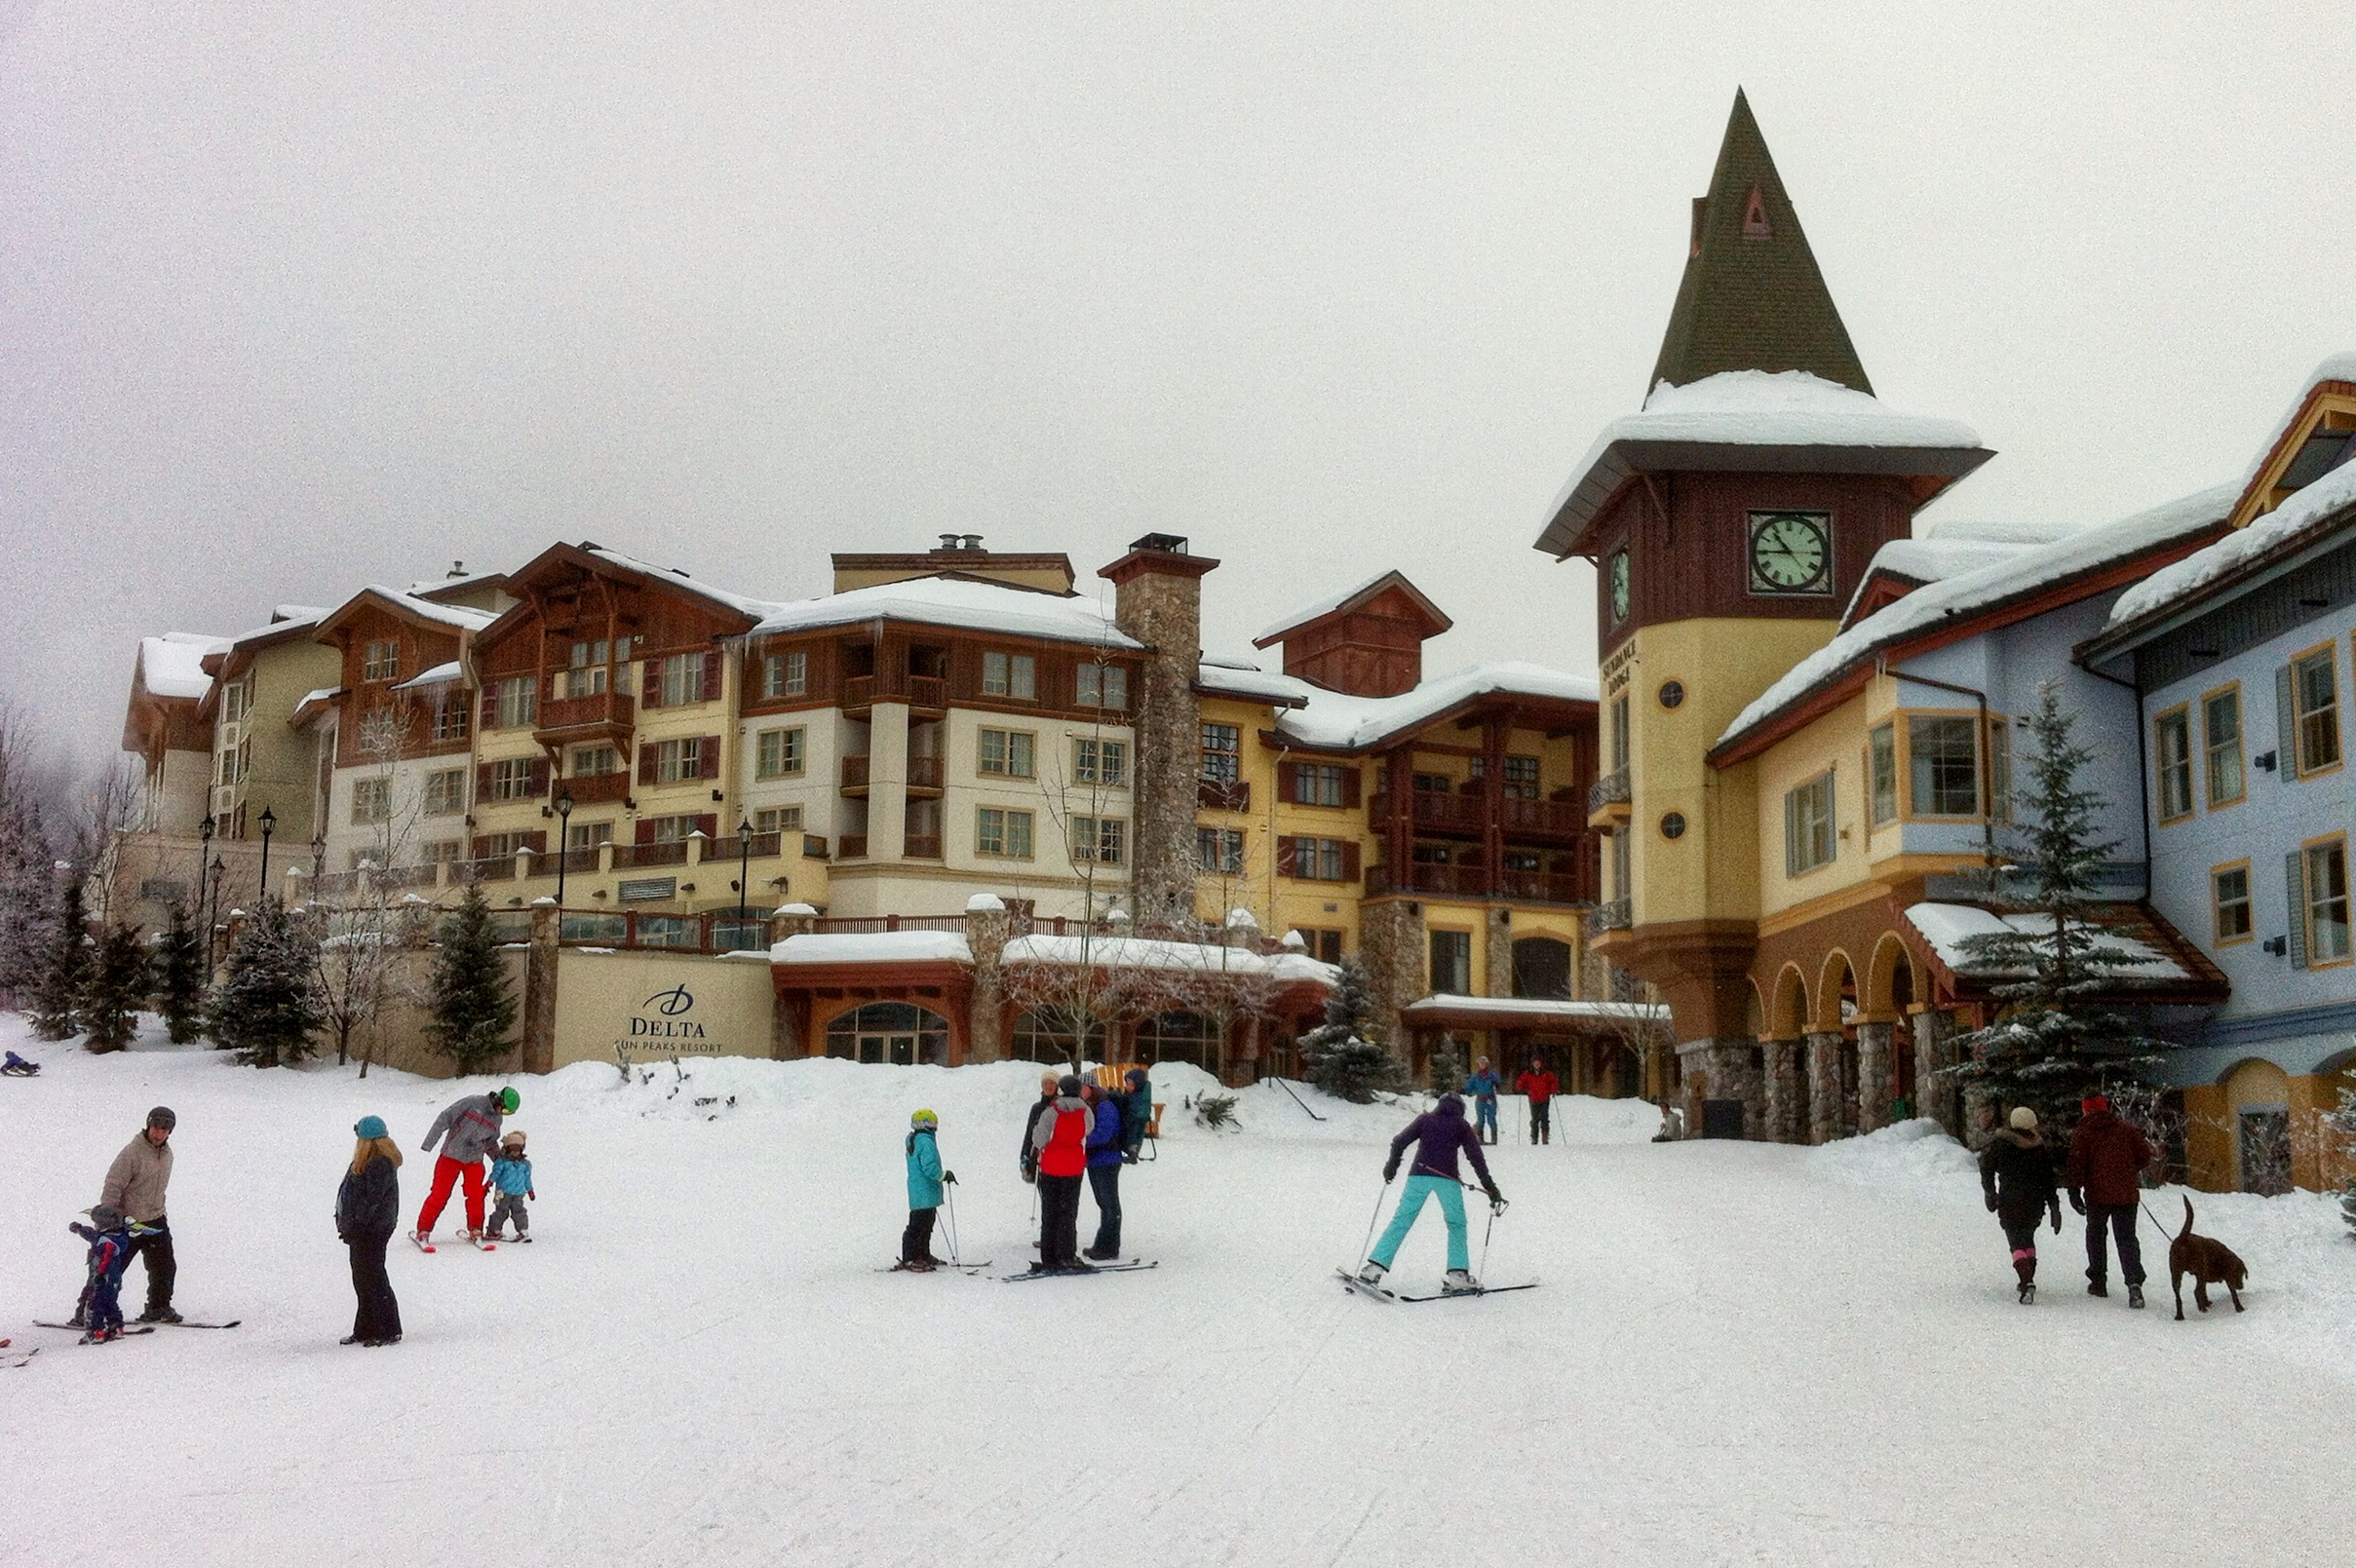 From our lens: Winter fun at Sun Peaks Resort